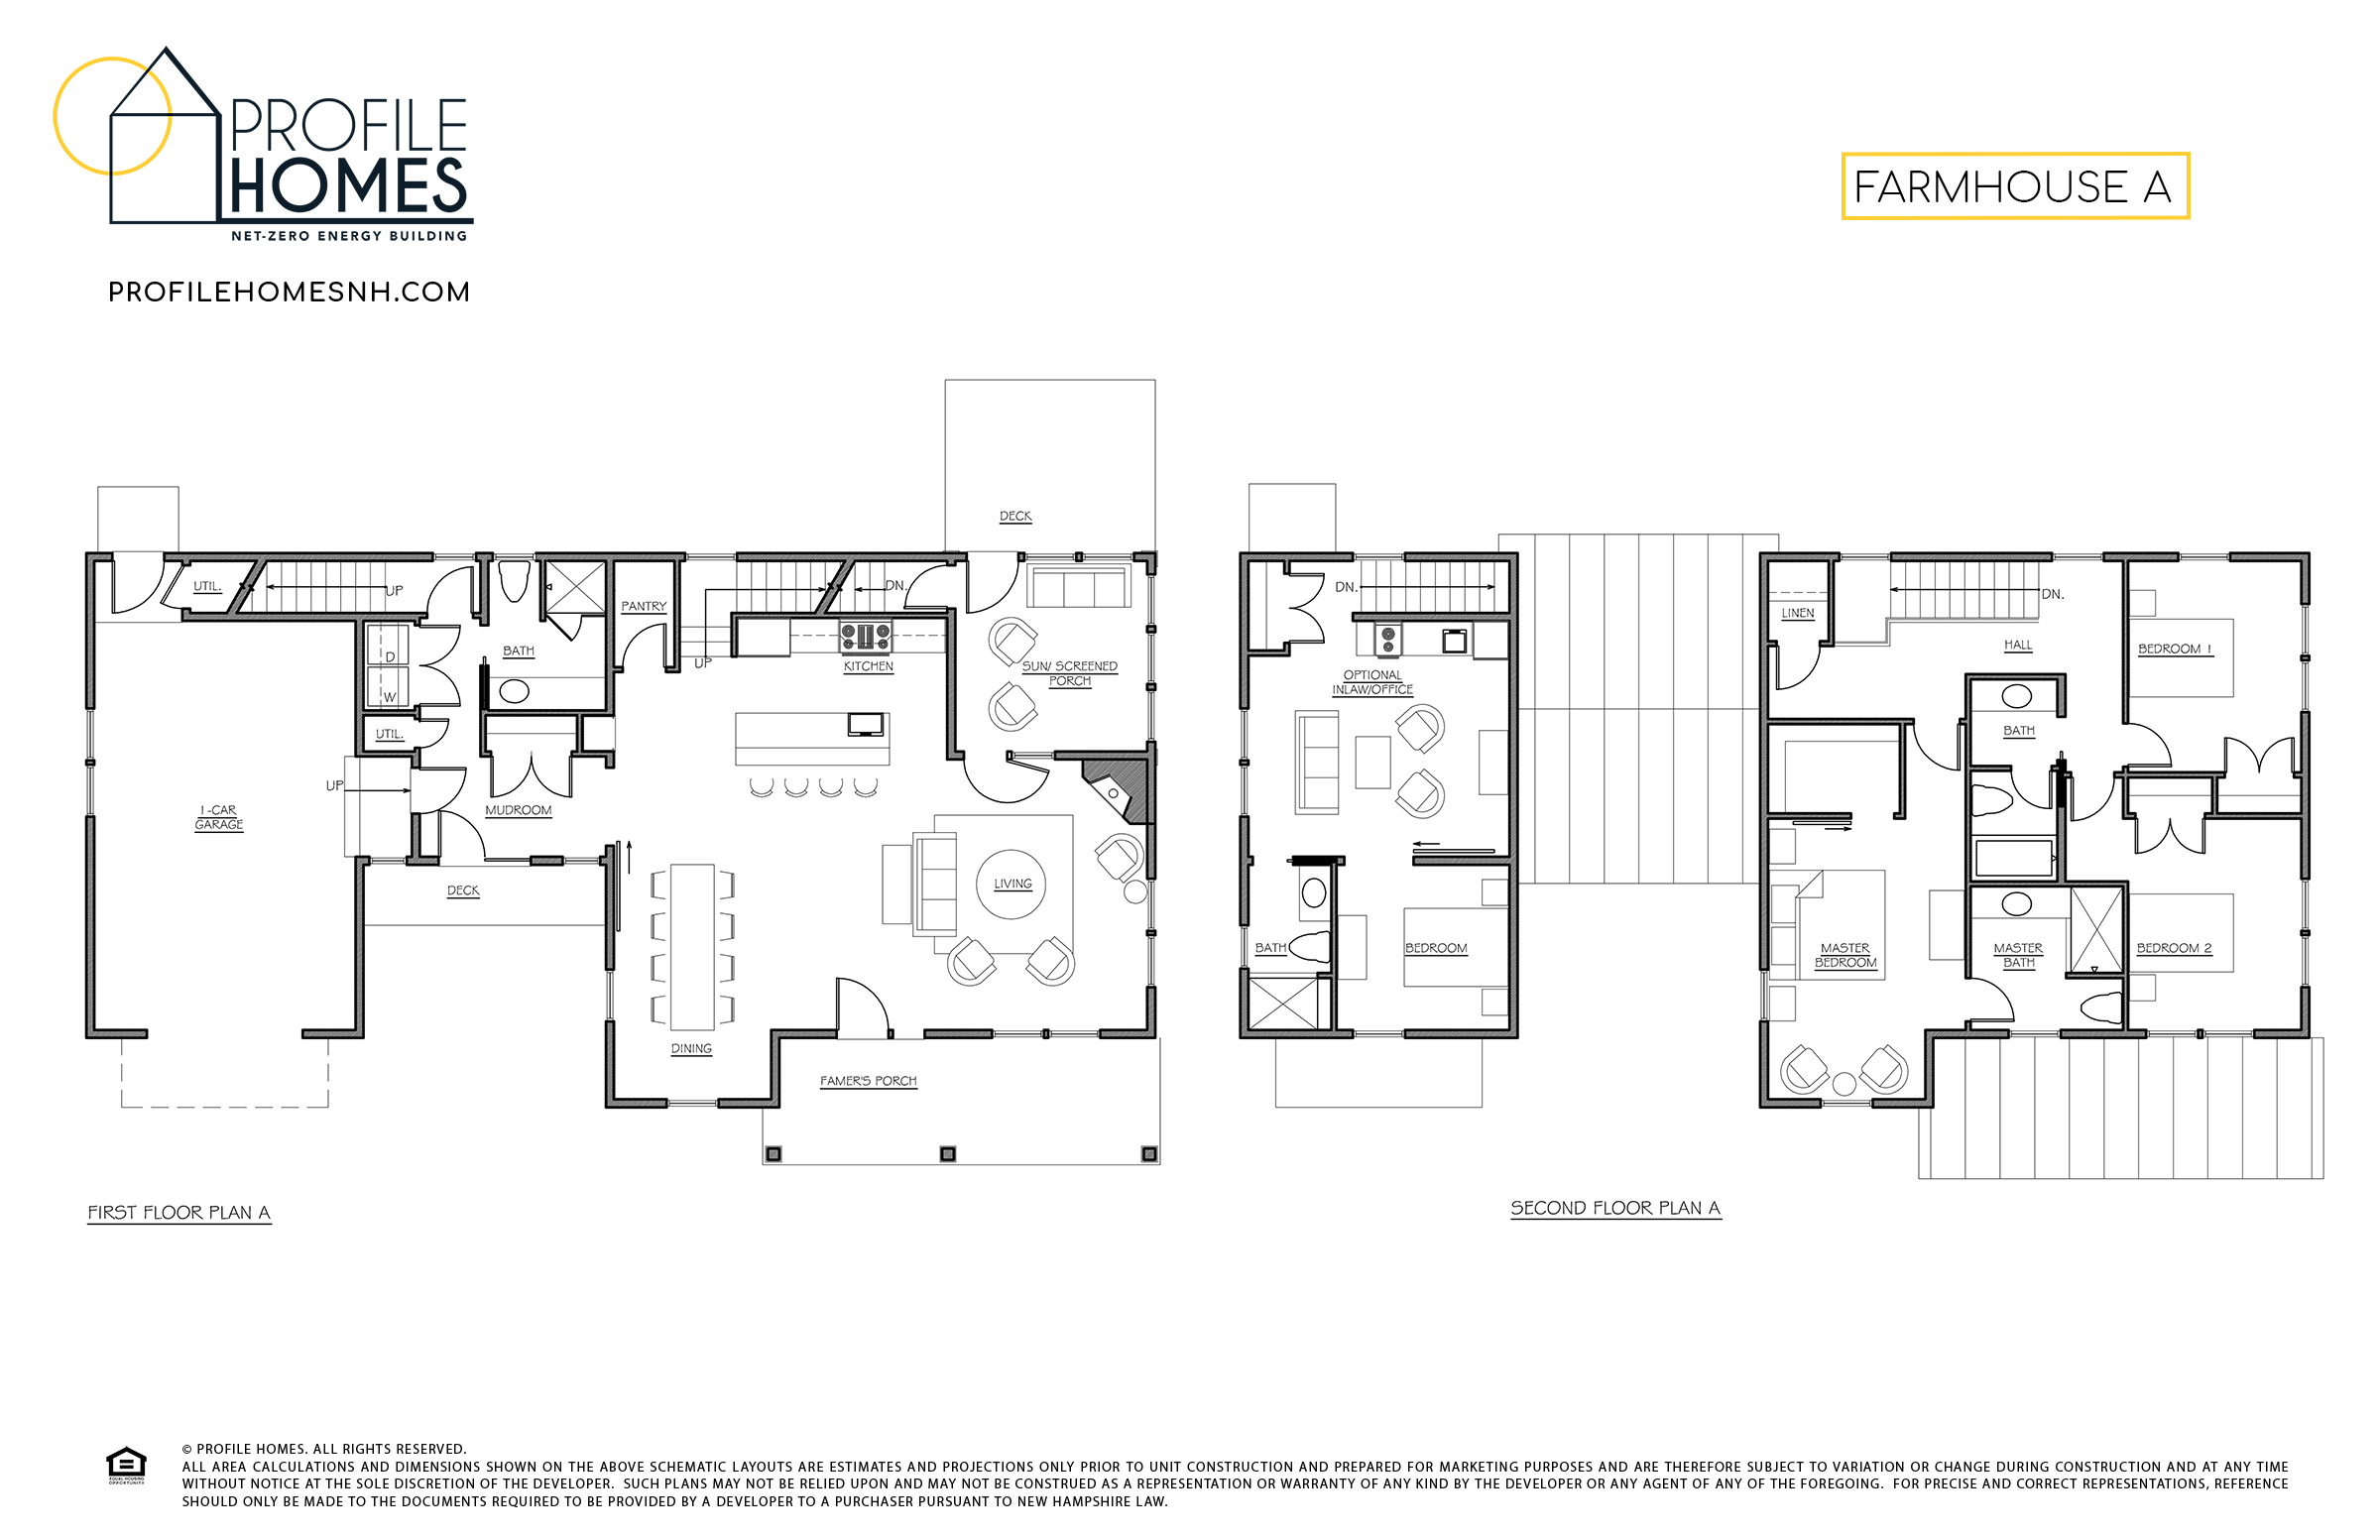 Profile Homes Floorplan Farmhouse A © 2018 Profile Homes